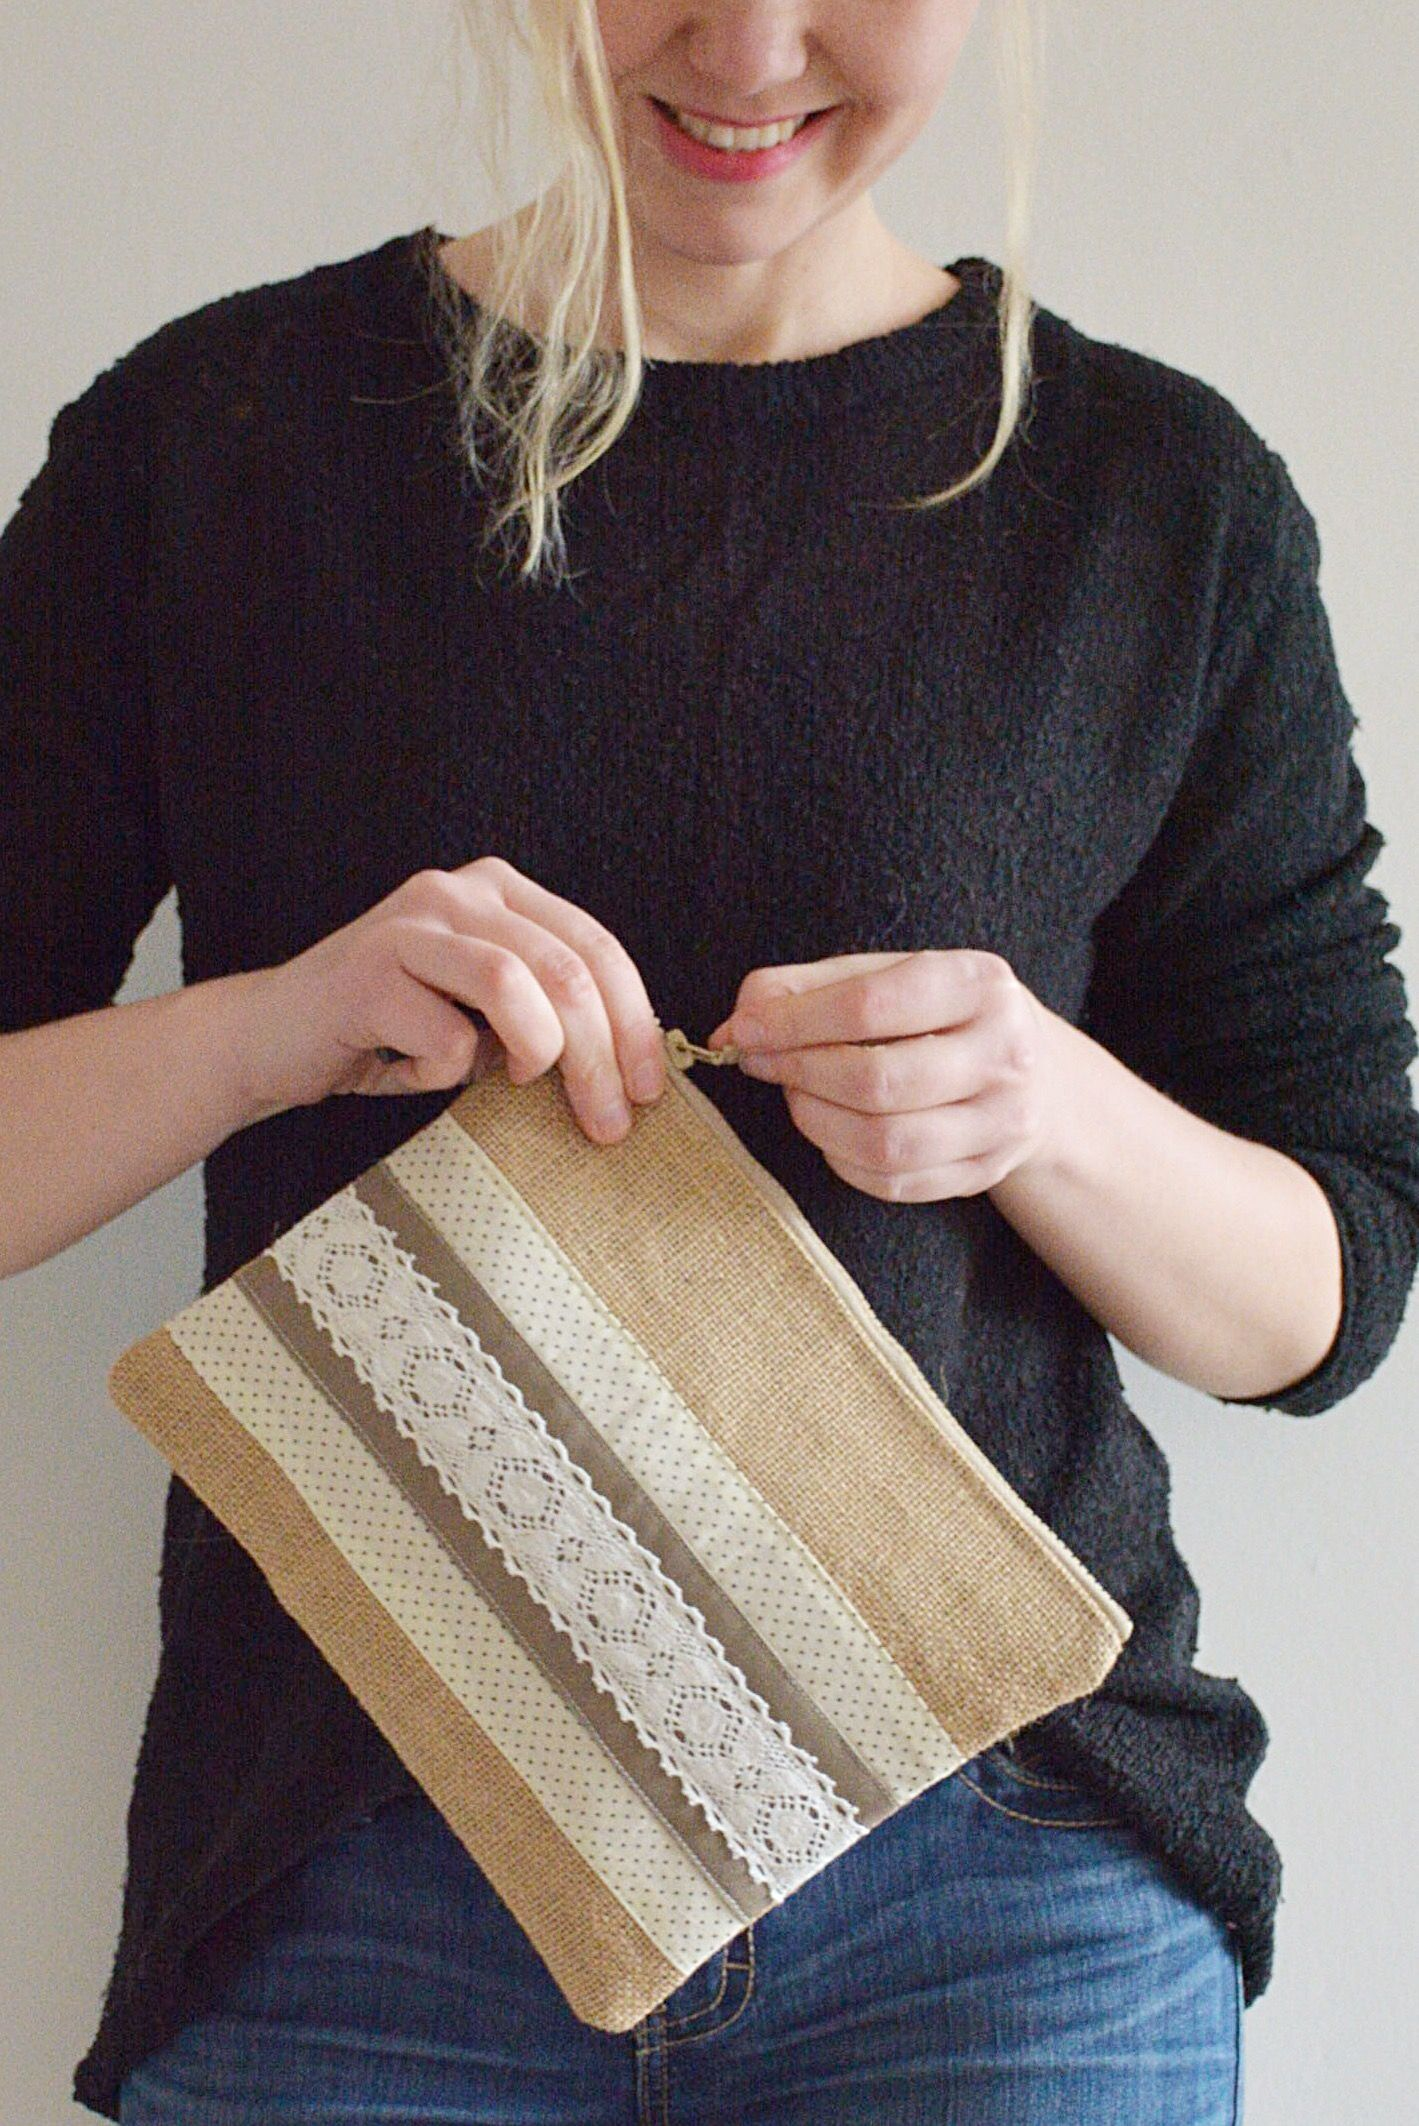 BURLAP with lace clutch bag with cotton lining //pouch with zipper // can be used as make up bag or toiletr